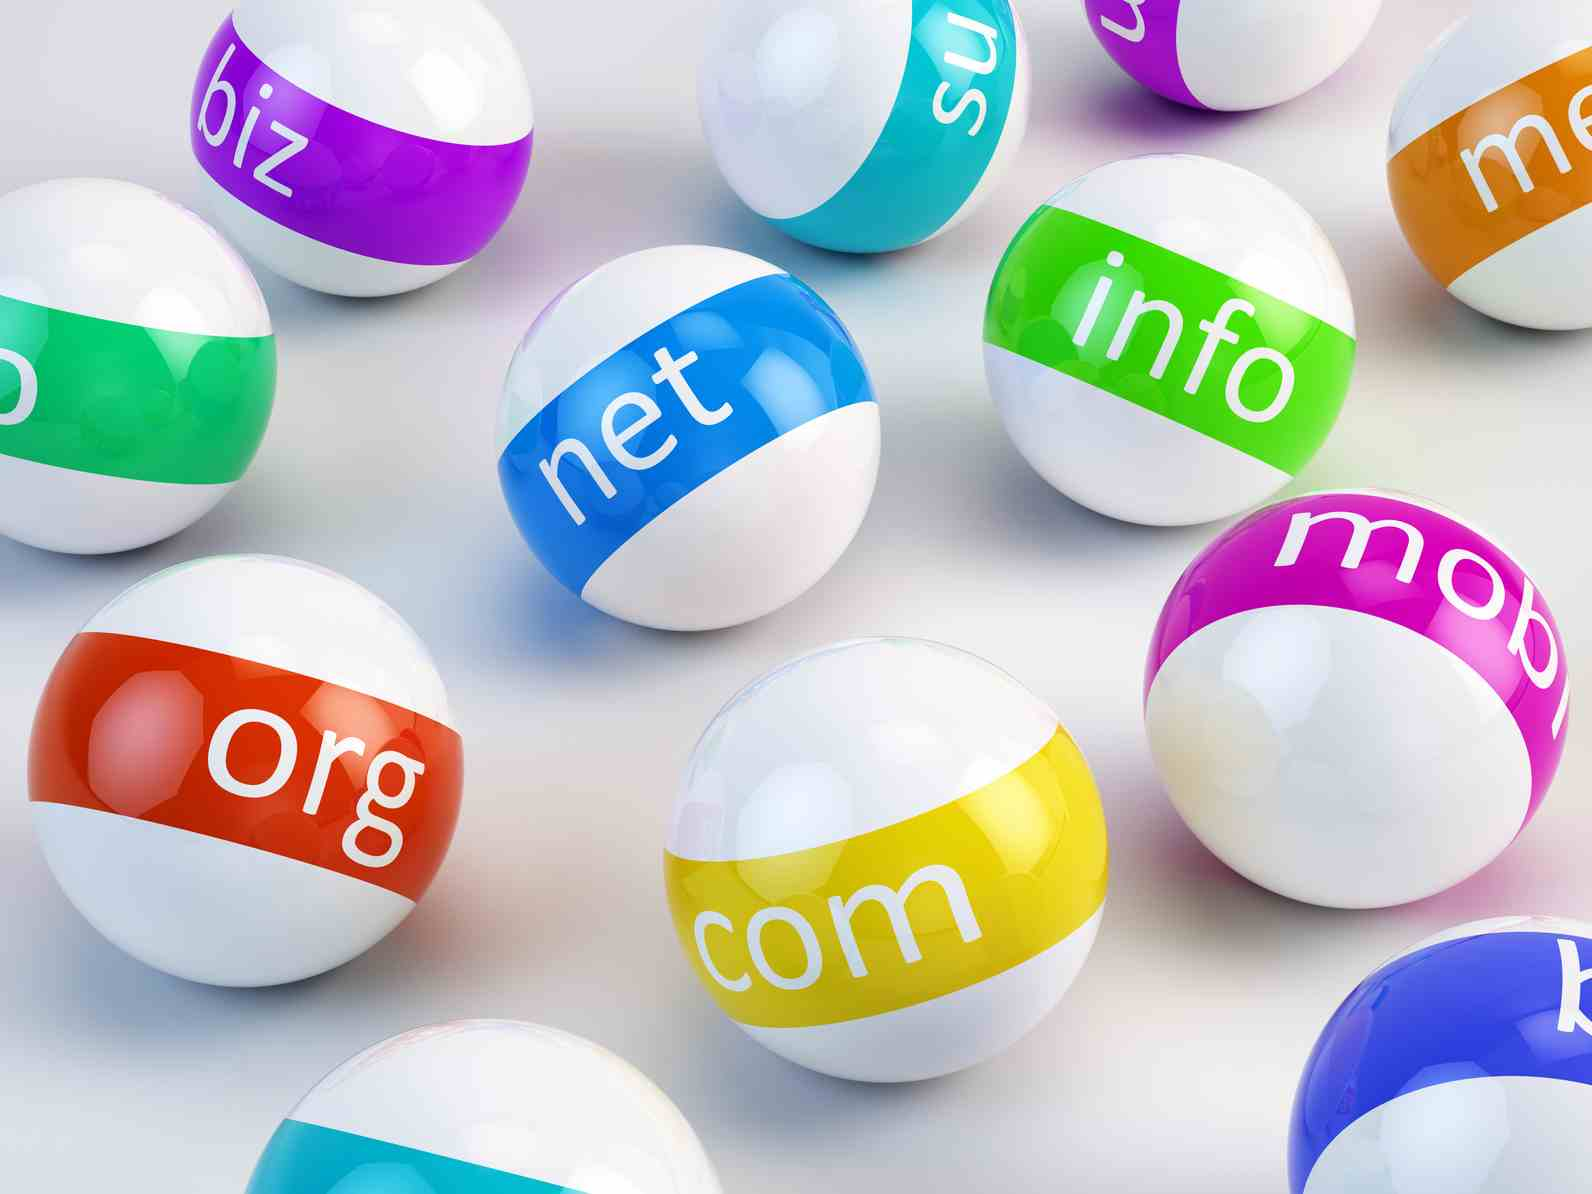 Appraisal Your Domain Name, Expert Valuation For Dom...